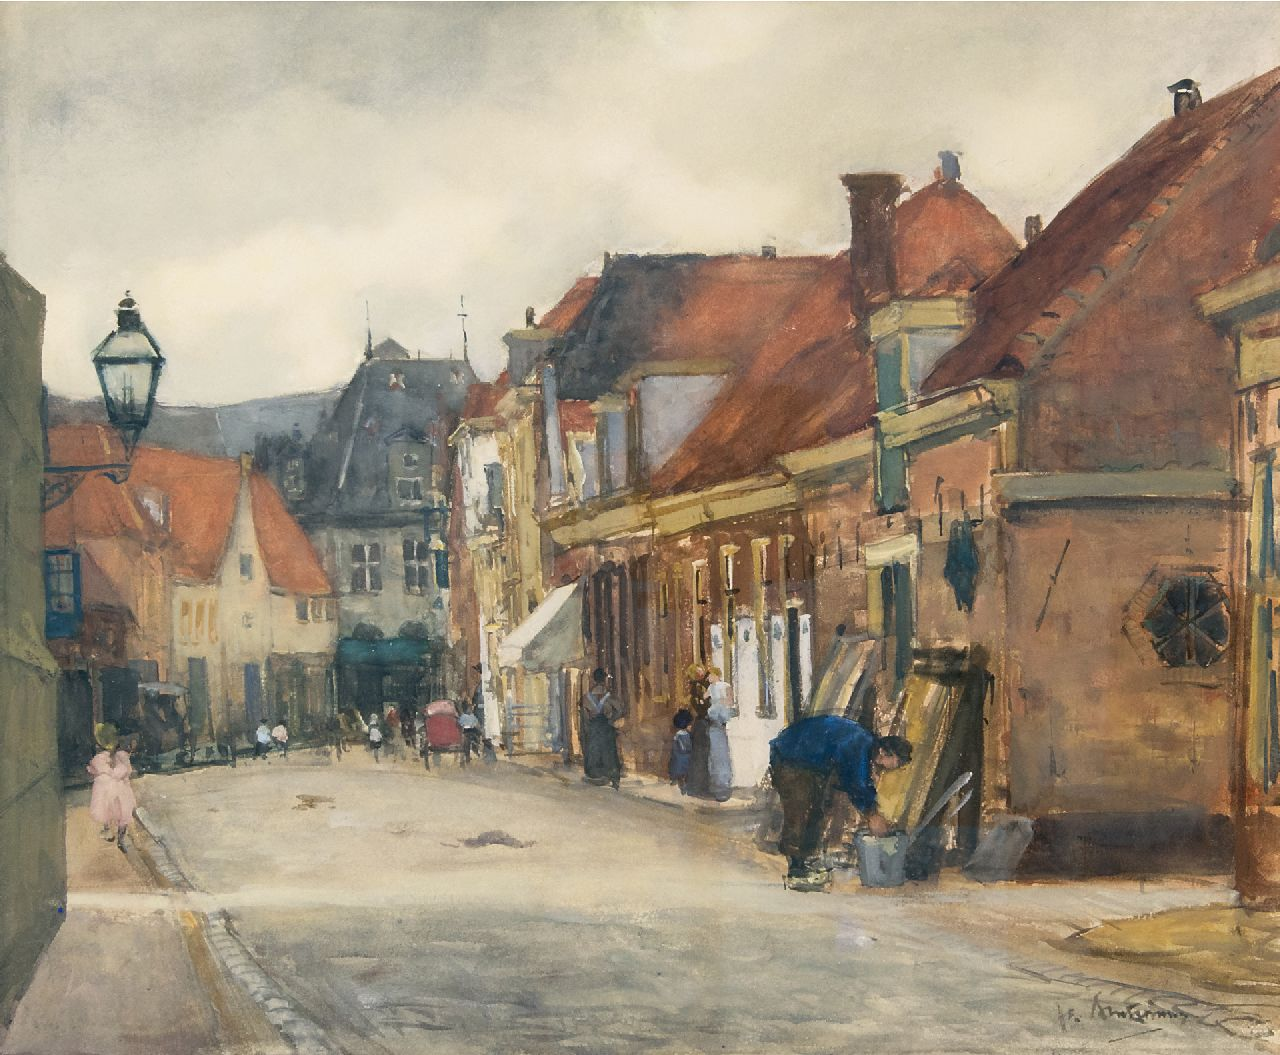 Arntzenius P.F.N.J.  | Pieter Florentius Nicolaas Jacobus 'Floris' Arntzenius | Watercolours and drawings offered for sale | A street in Hoorn with the Kaaswaag in the distance, watercolour on paper 39.0 x 46.5 cm, signed l.r. and painted August 1905